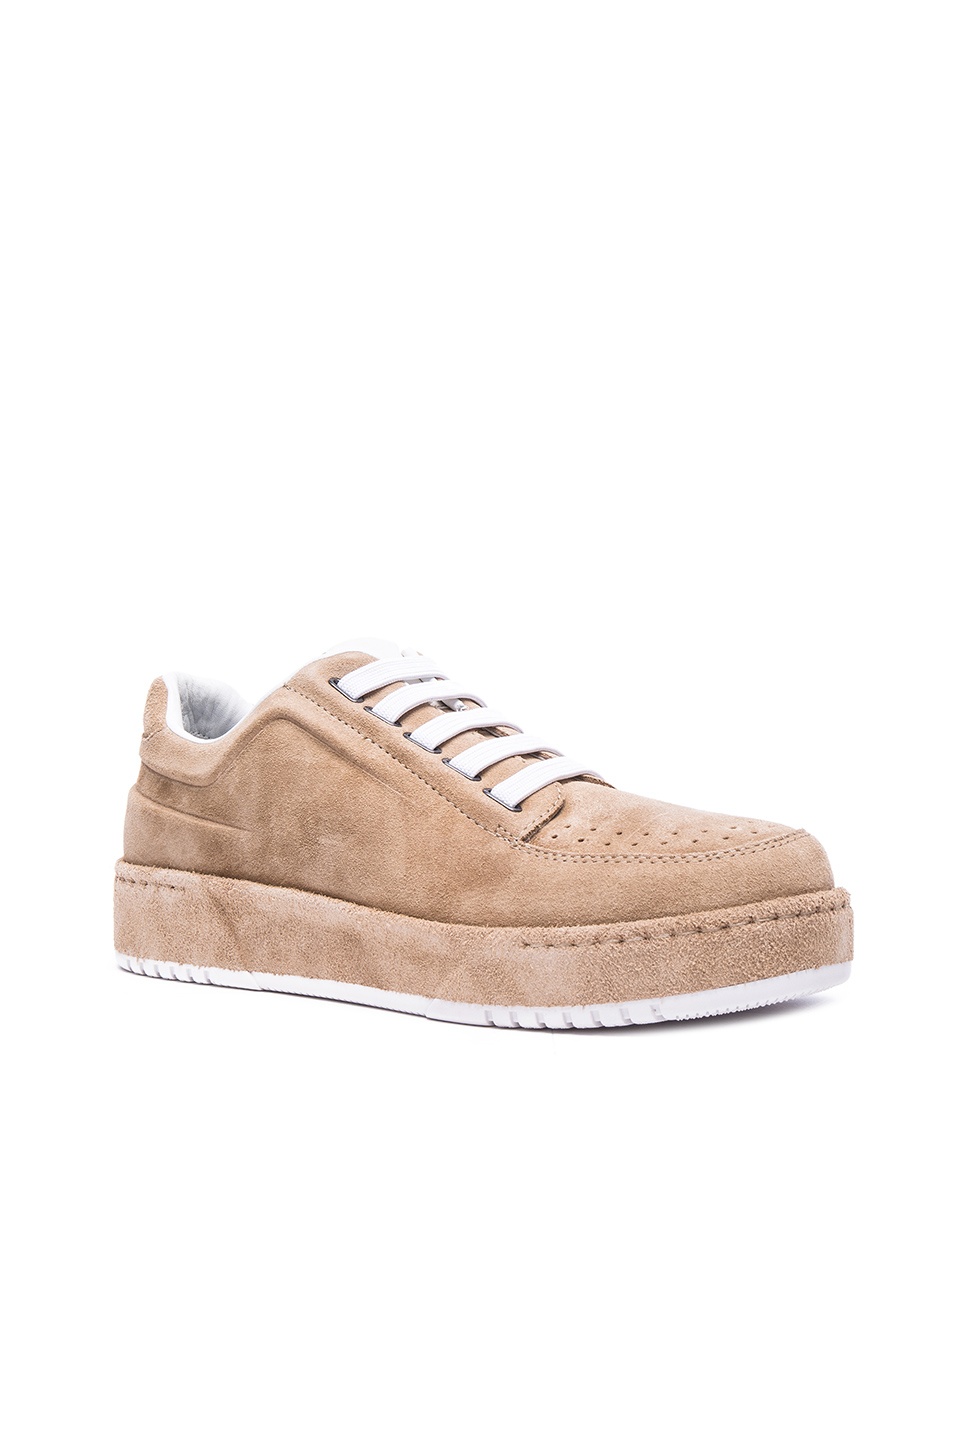 3.1 phillip lim PL31 Low Top Suede Sneakers in Neutrals